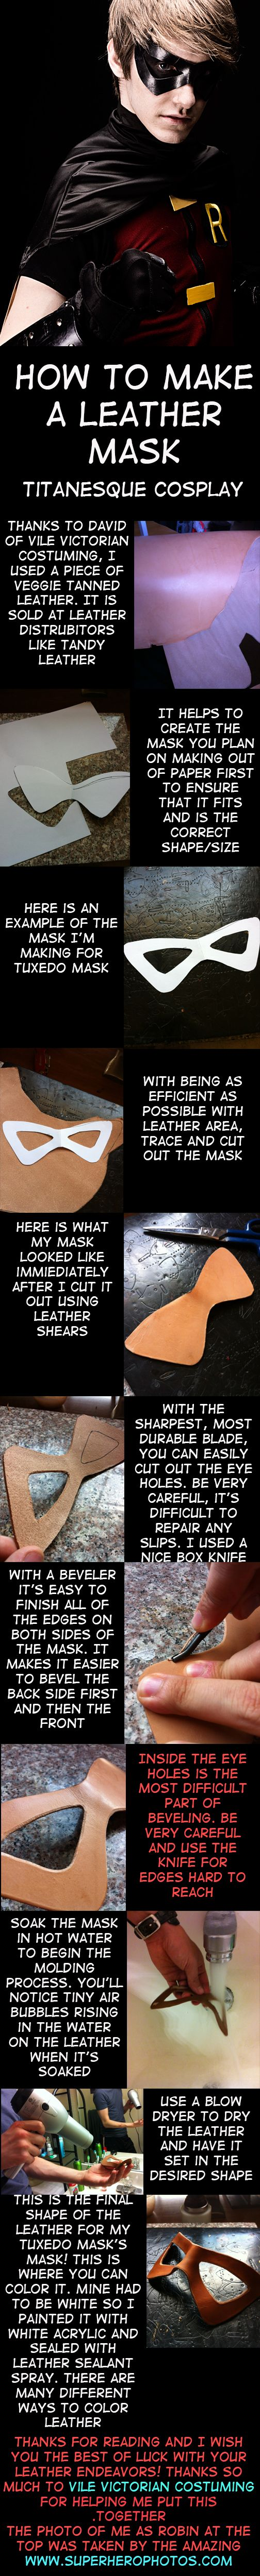 Leather Mask Tutorial by TitanesqueCosplay.deviantart.com on @deviantART